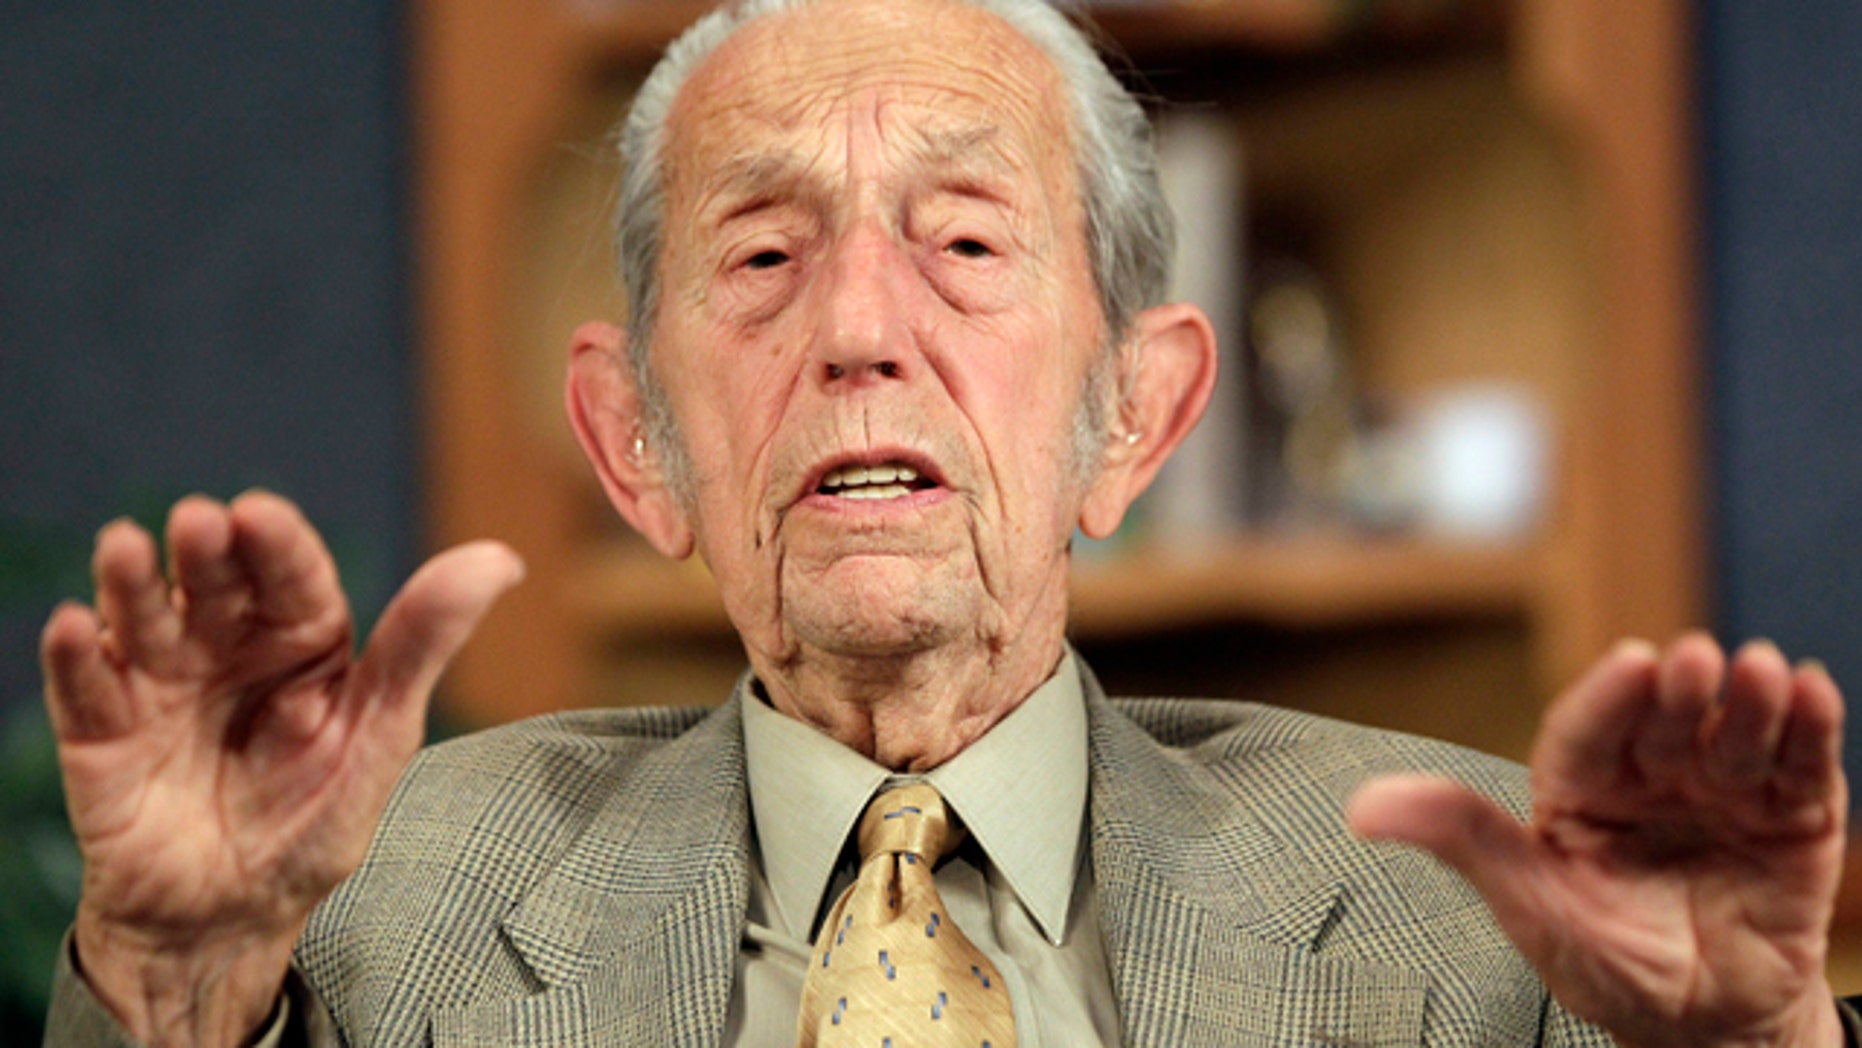 """March 23, 2011: Harold Camping speaks during a taping of his show """"Open Forum"""" in Oakland, Calif. Camping says his prophecy that the world would end was off by five months because Judgment Day actually will come on Oct. 21."""